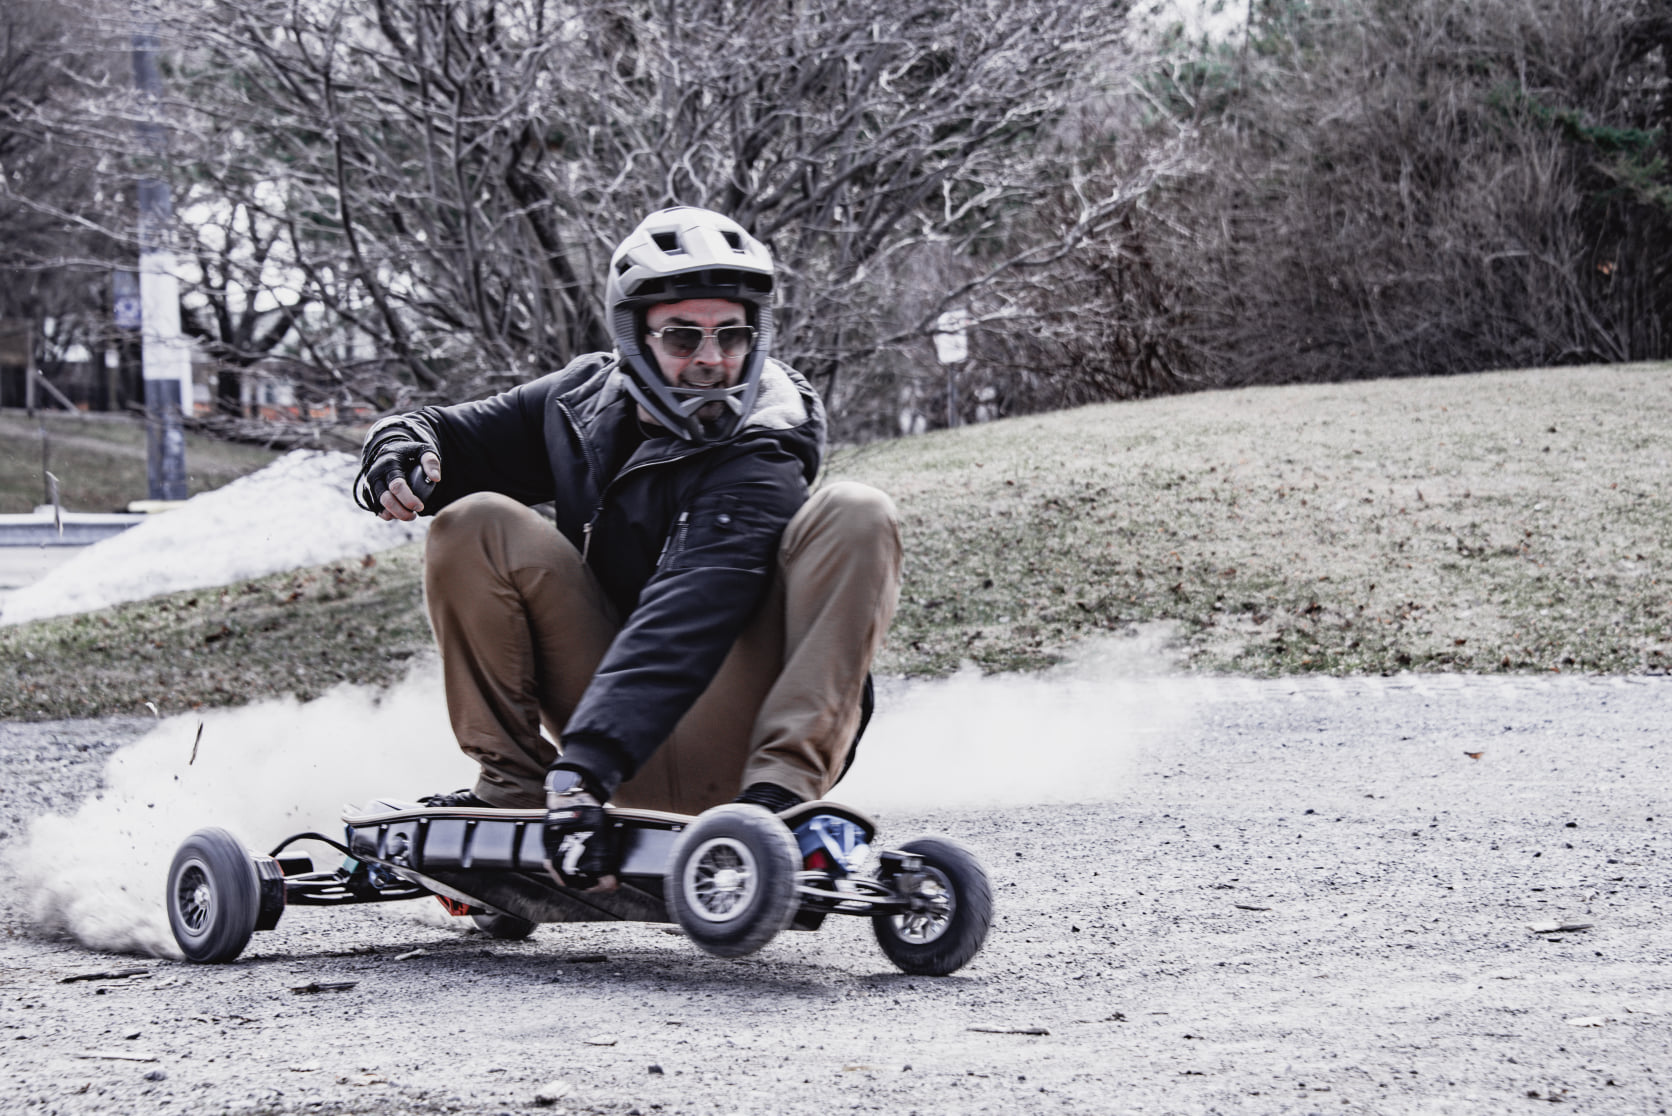 Can you ride a skateboard offroad?